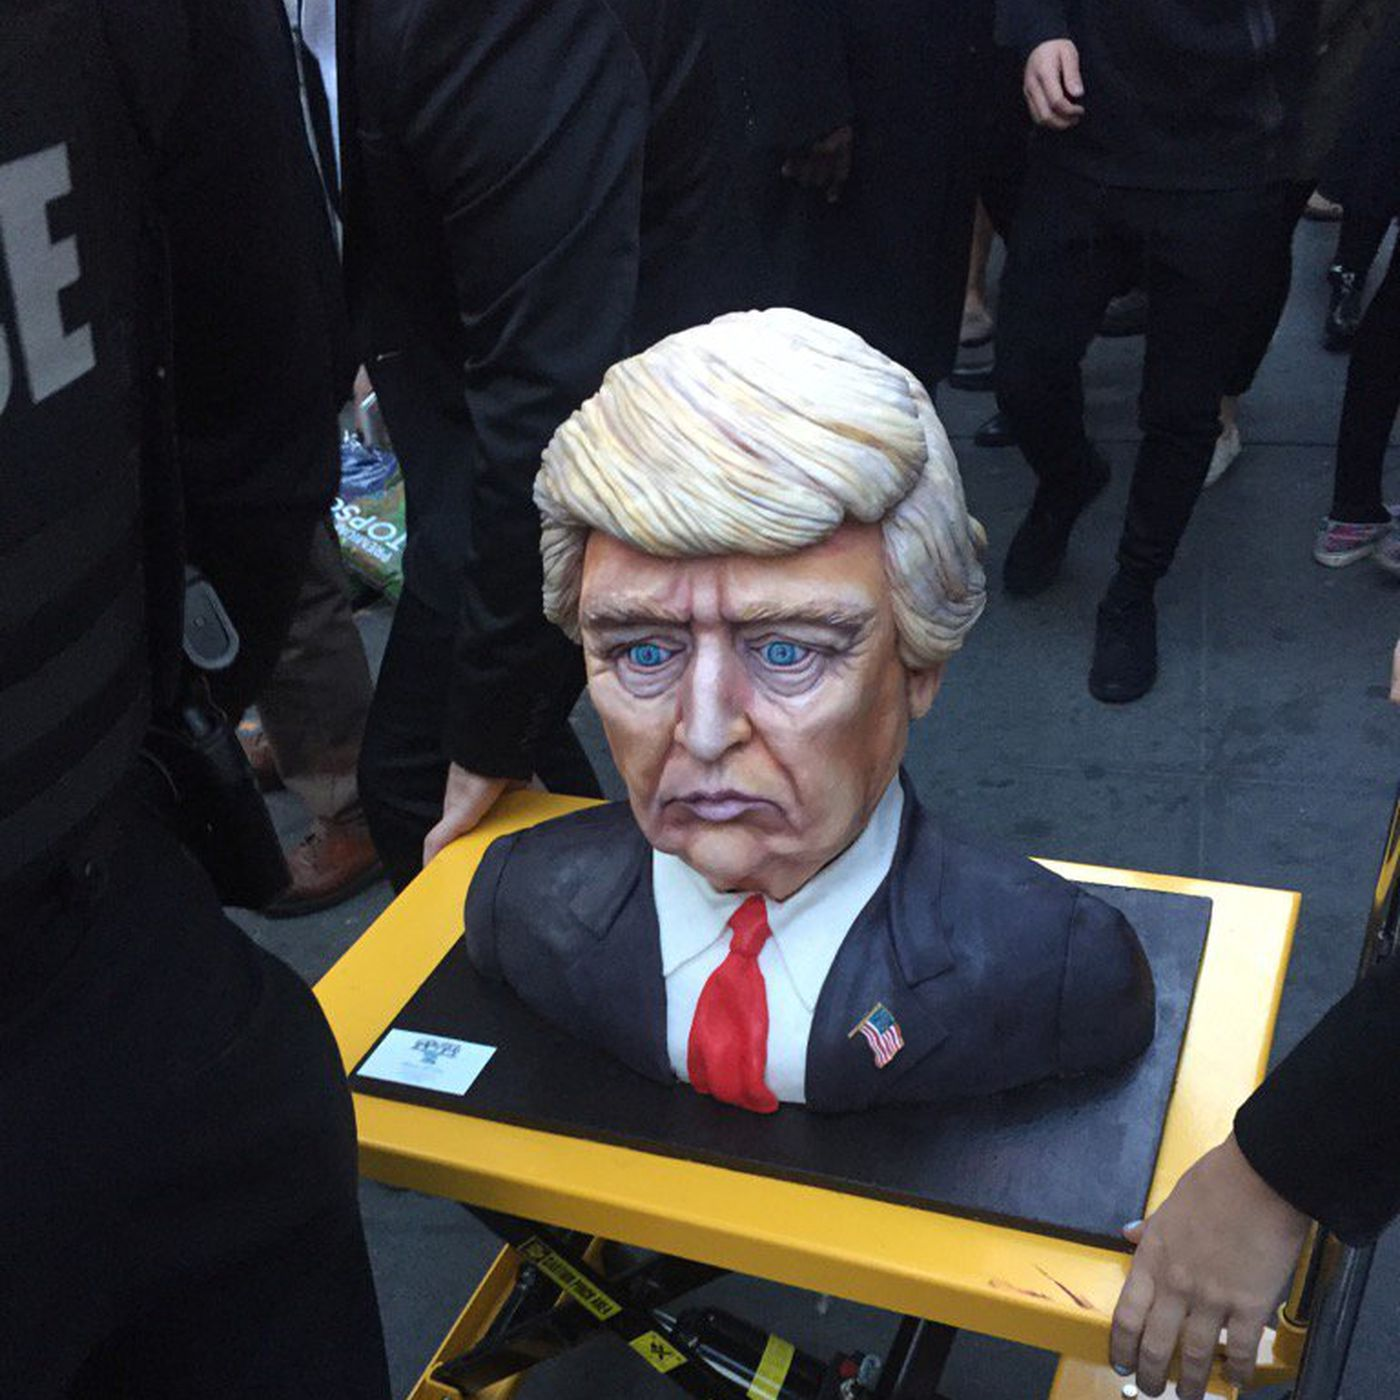 Sad Trump Cake Is The Perfect Meme To End His Campaign The Verge